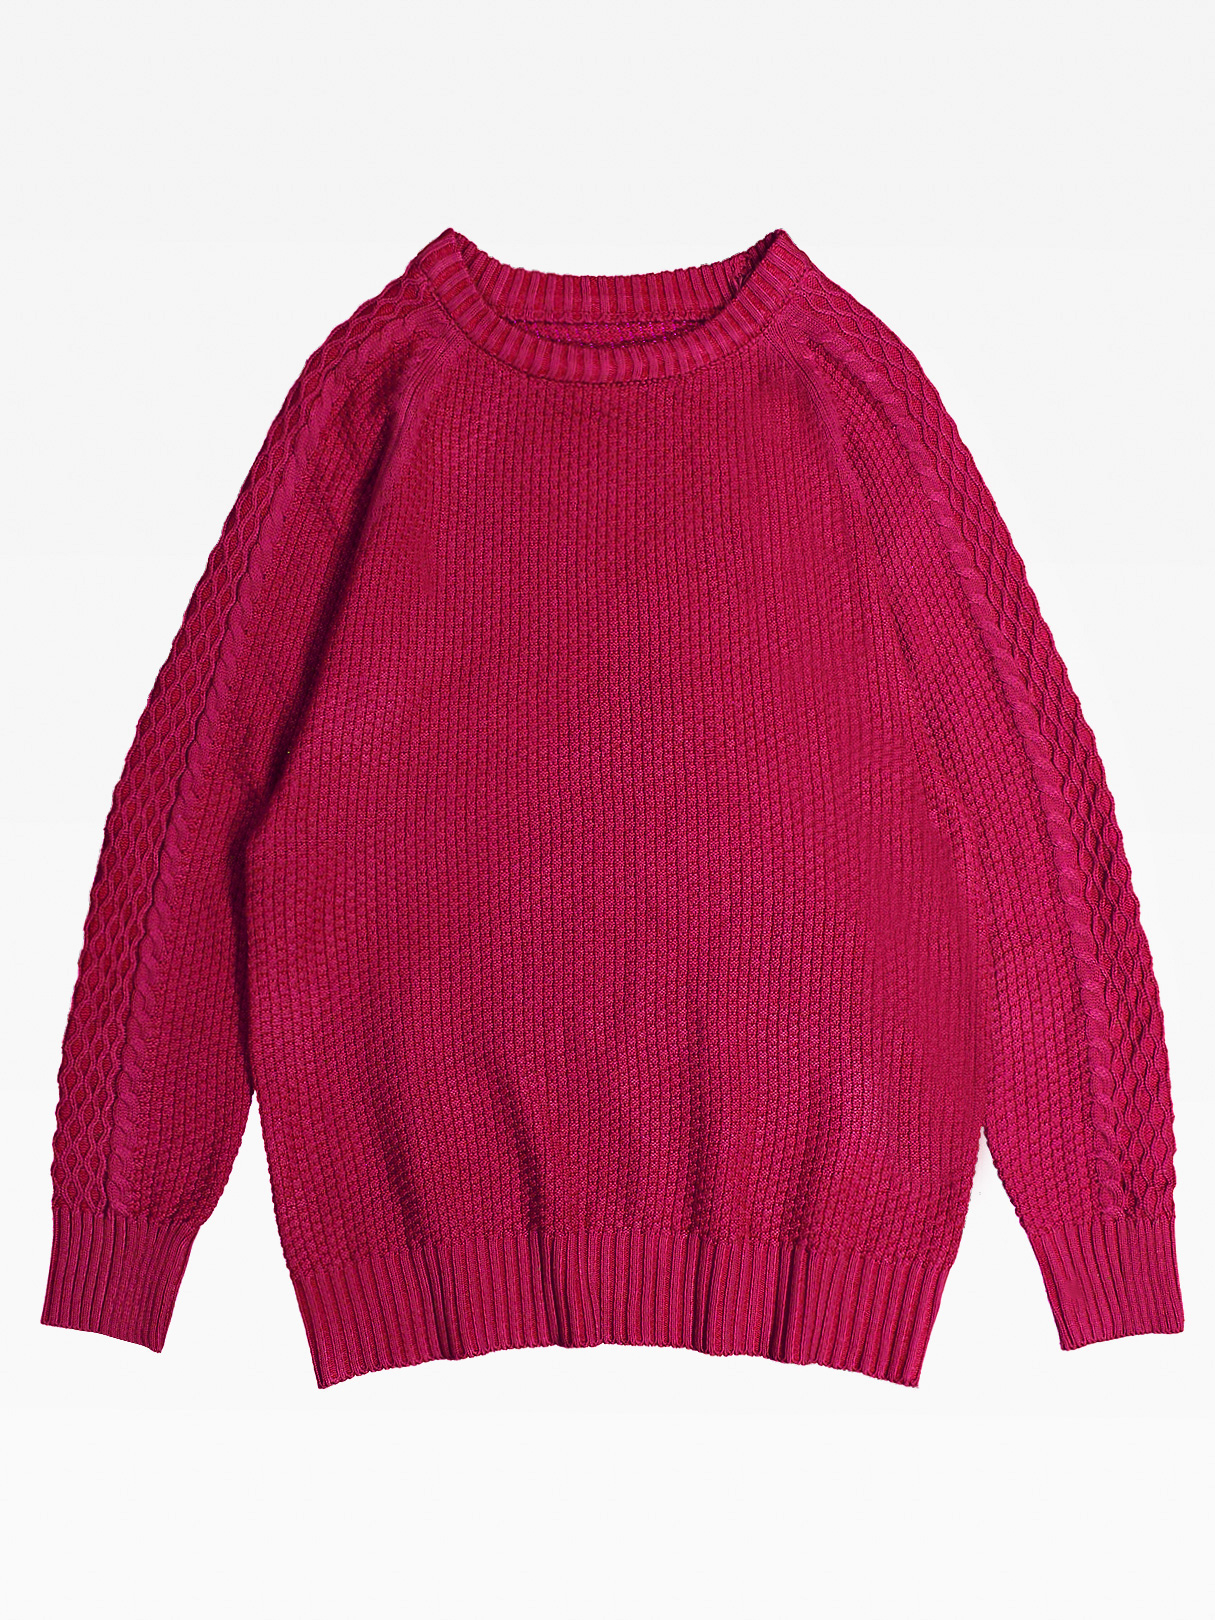 Men's Casual Leisure O-Neck warm knit Pullover Knitting Sweaters In Burgundy